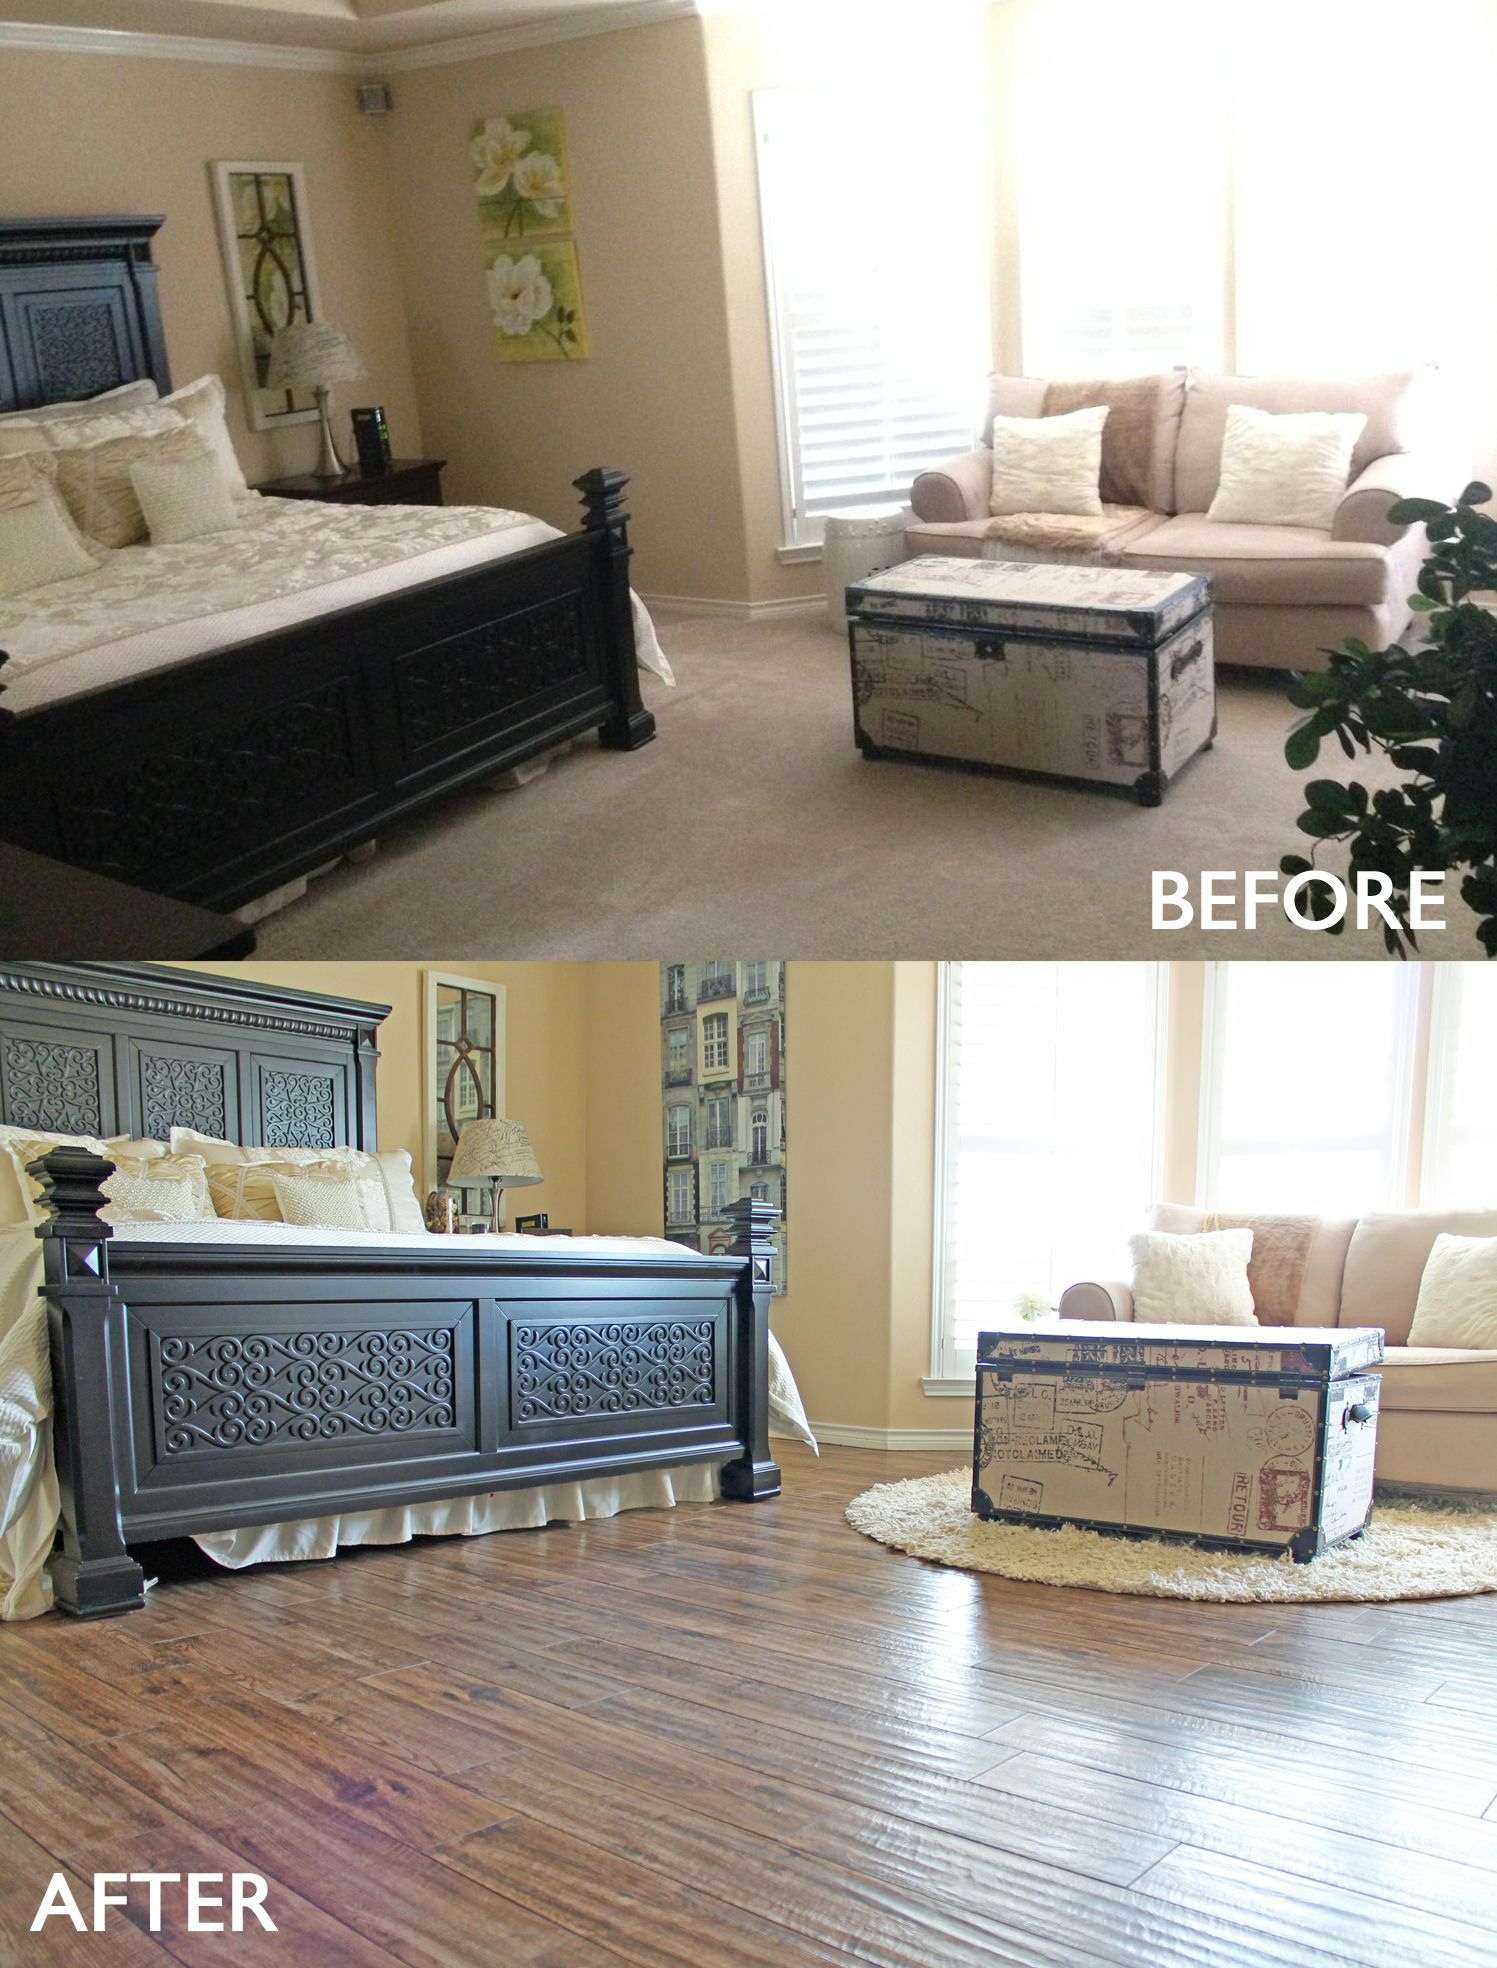 Master Bedroom Remodel Before And After From Carpet To Wood Look Tile Floors